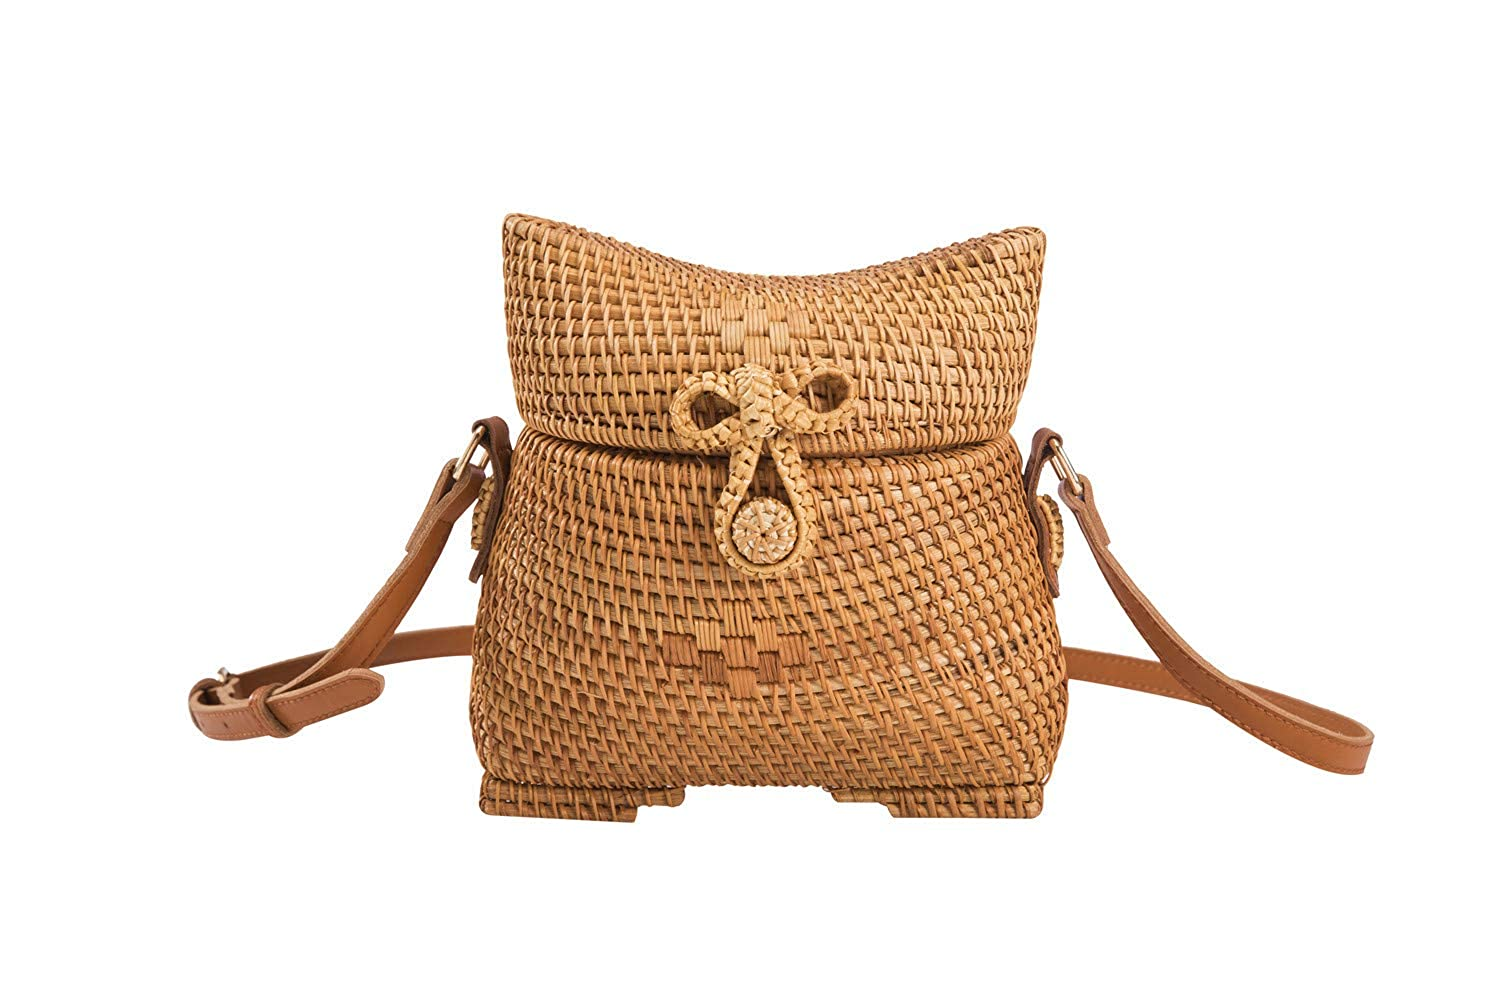 Gourd Shape BOKPLD Bali Ata Rattan Woven Crossbody Bag   Backpack   Shoulder bag with Bow Clasp for Women